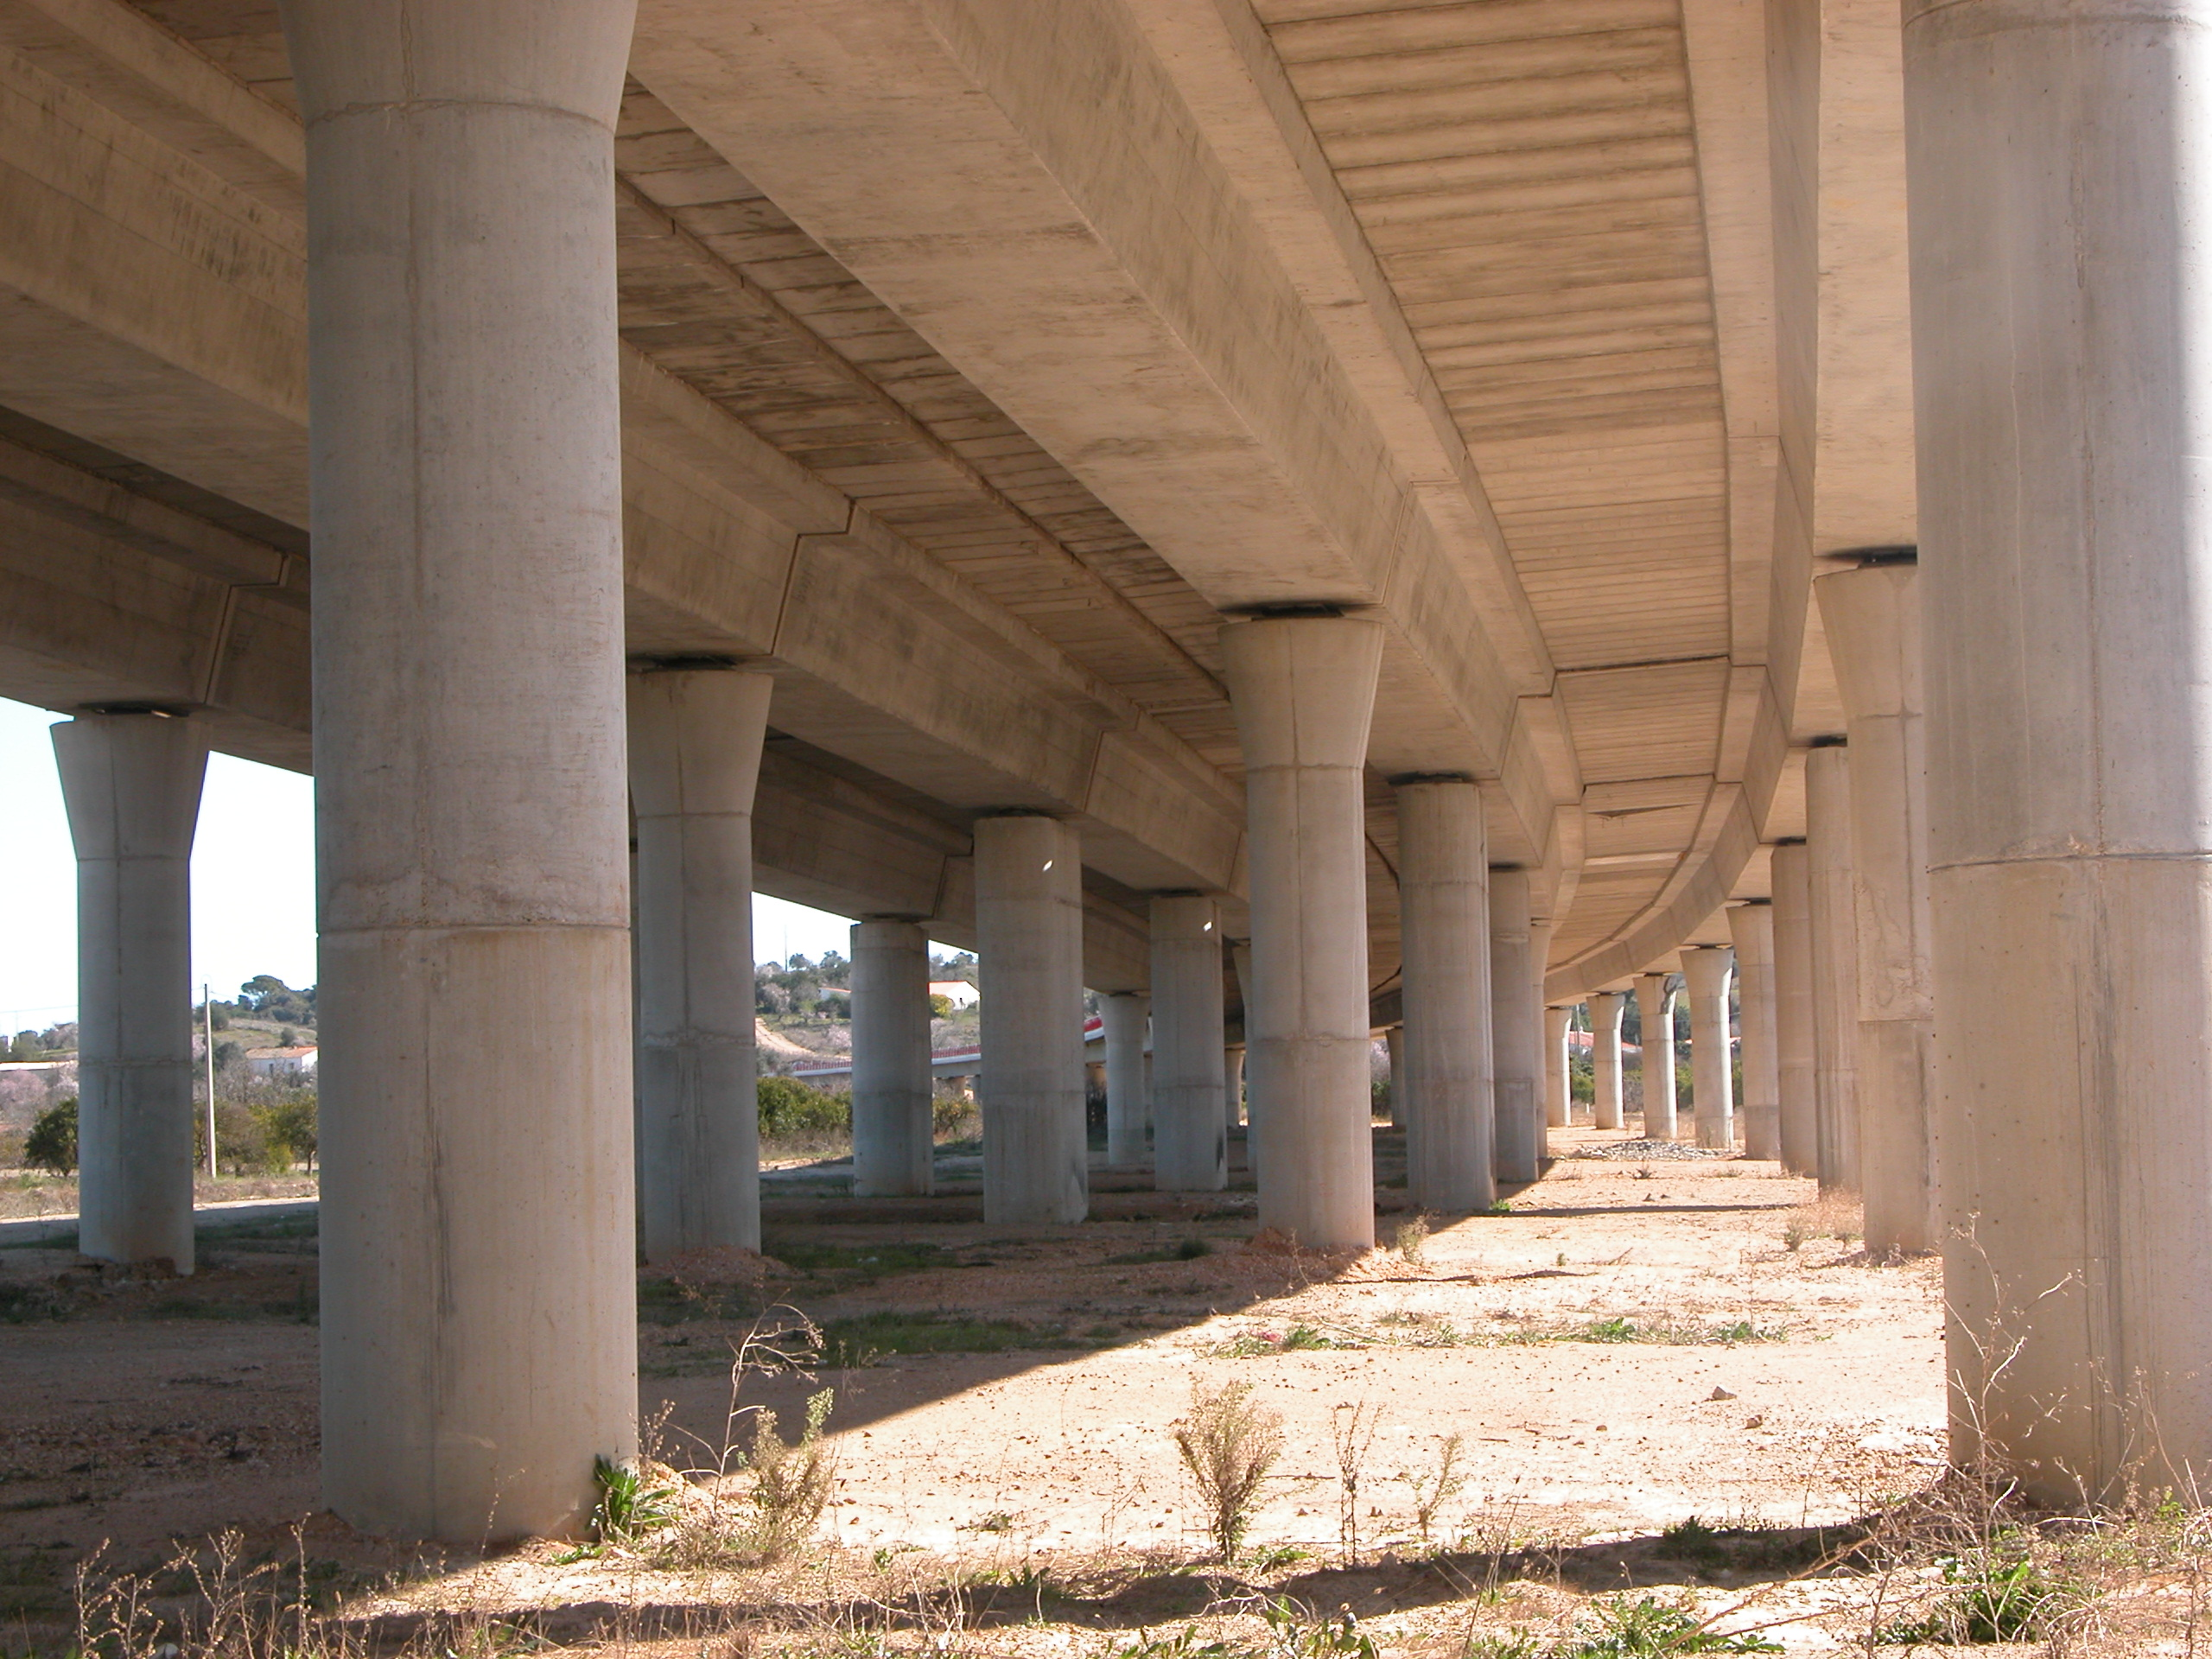 under road pillars ramp concrete